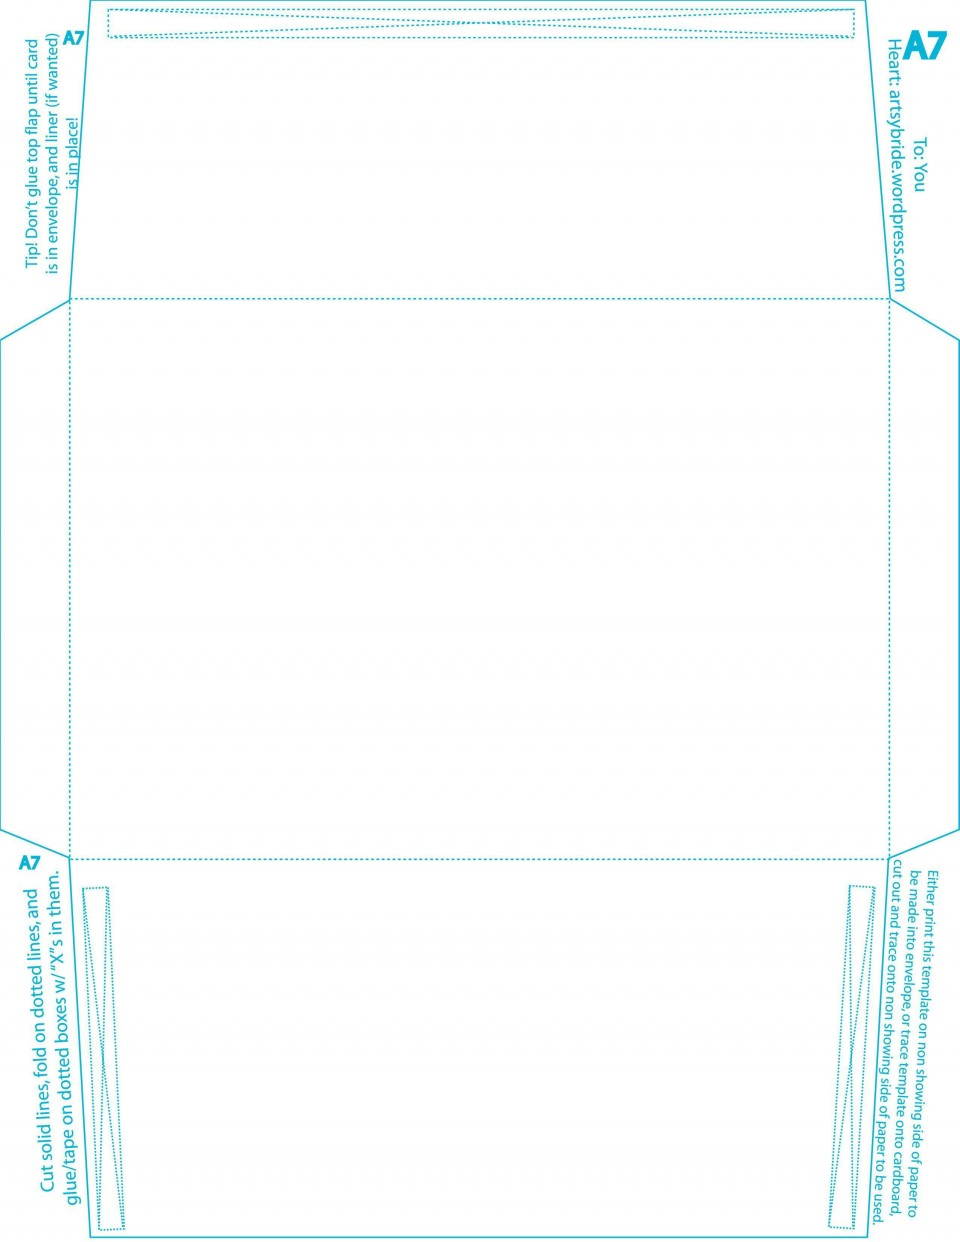 007 Top A7 Envelope Liner Template Free High Resolution 960